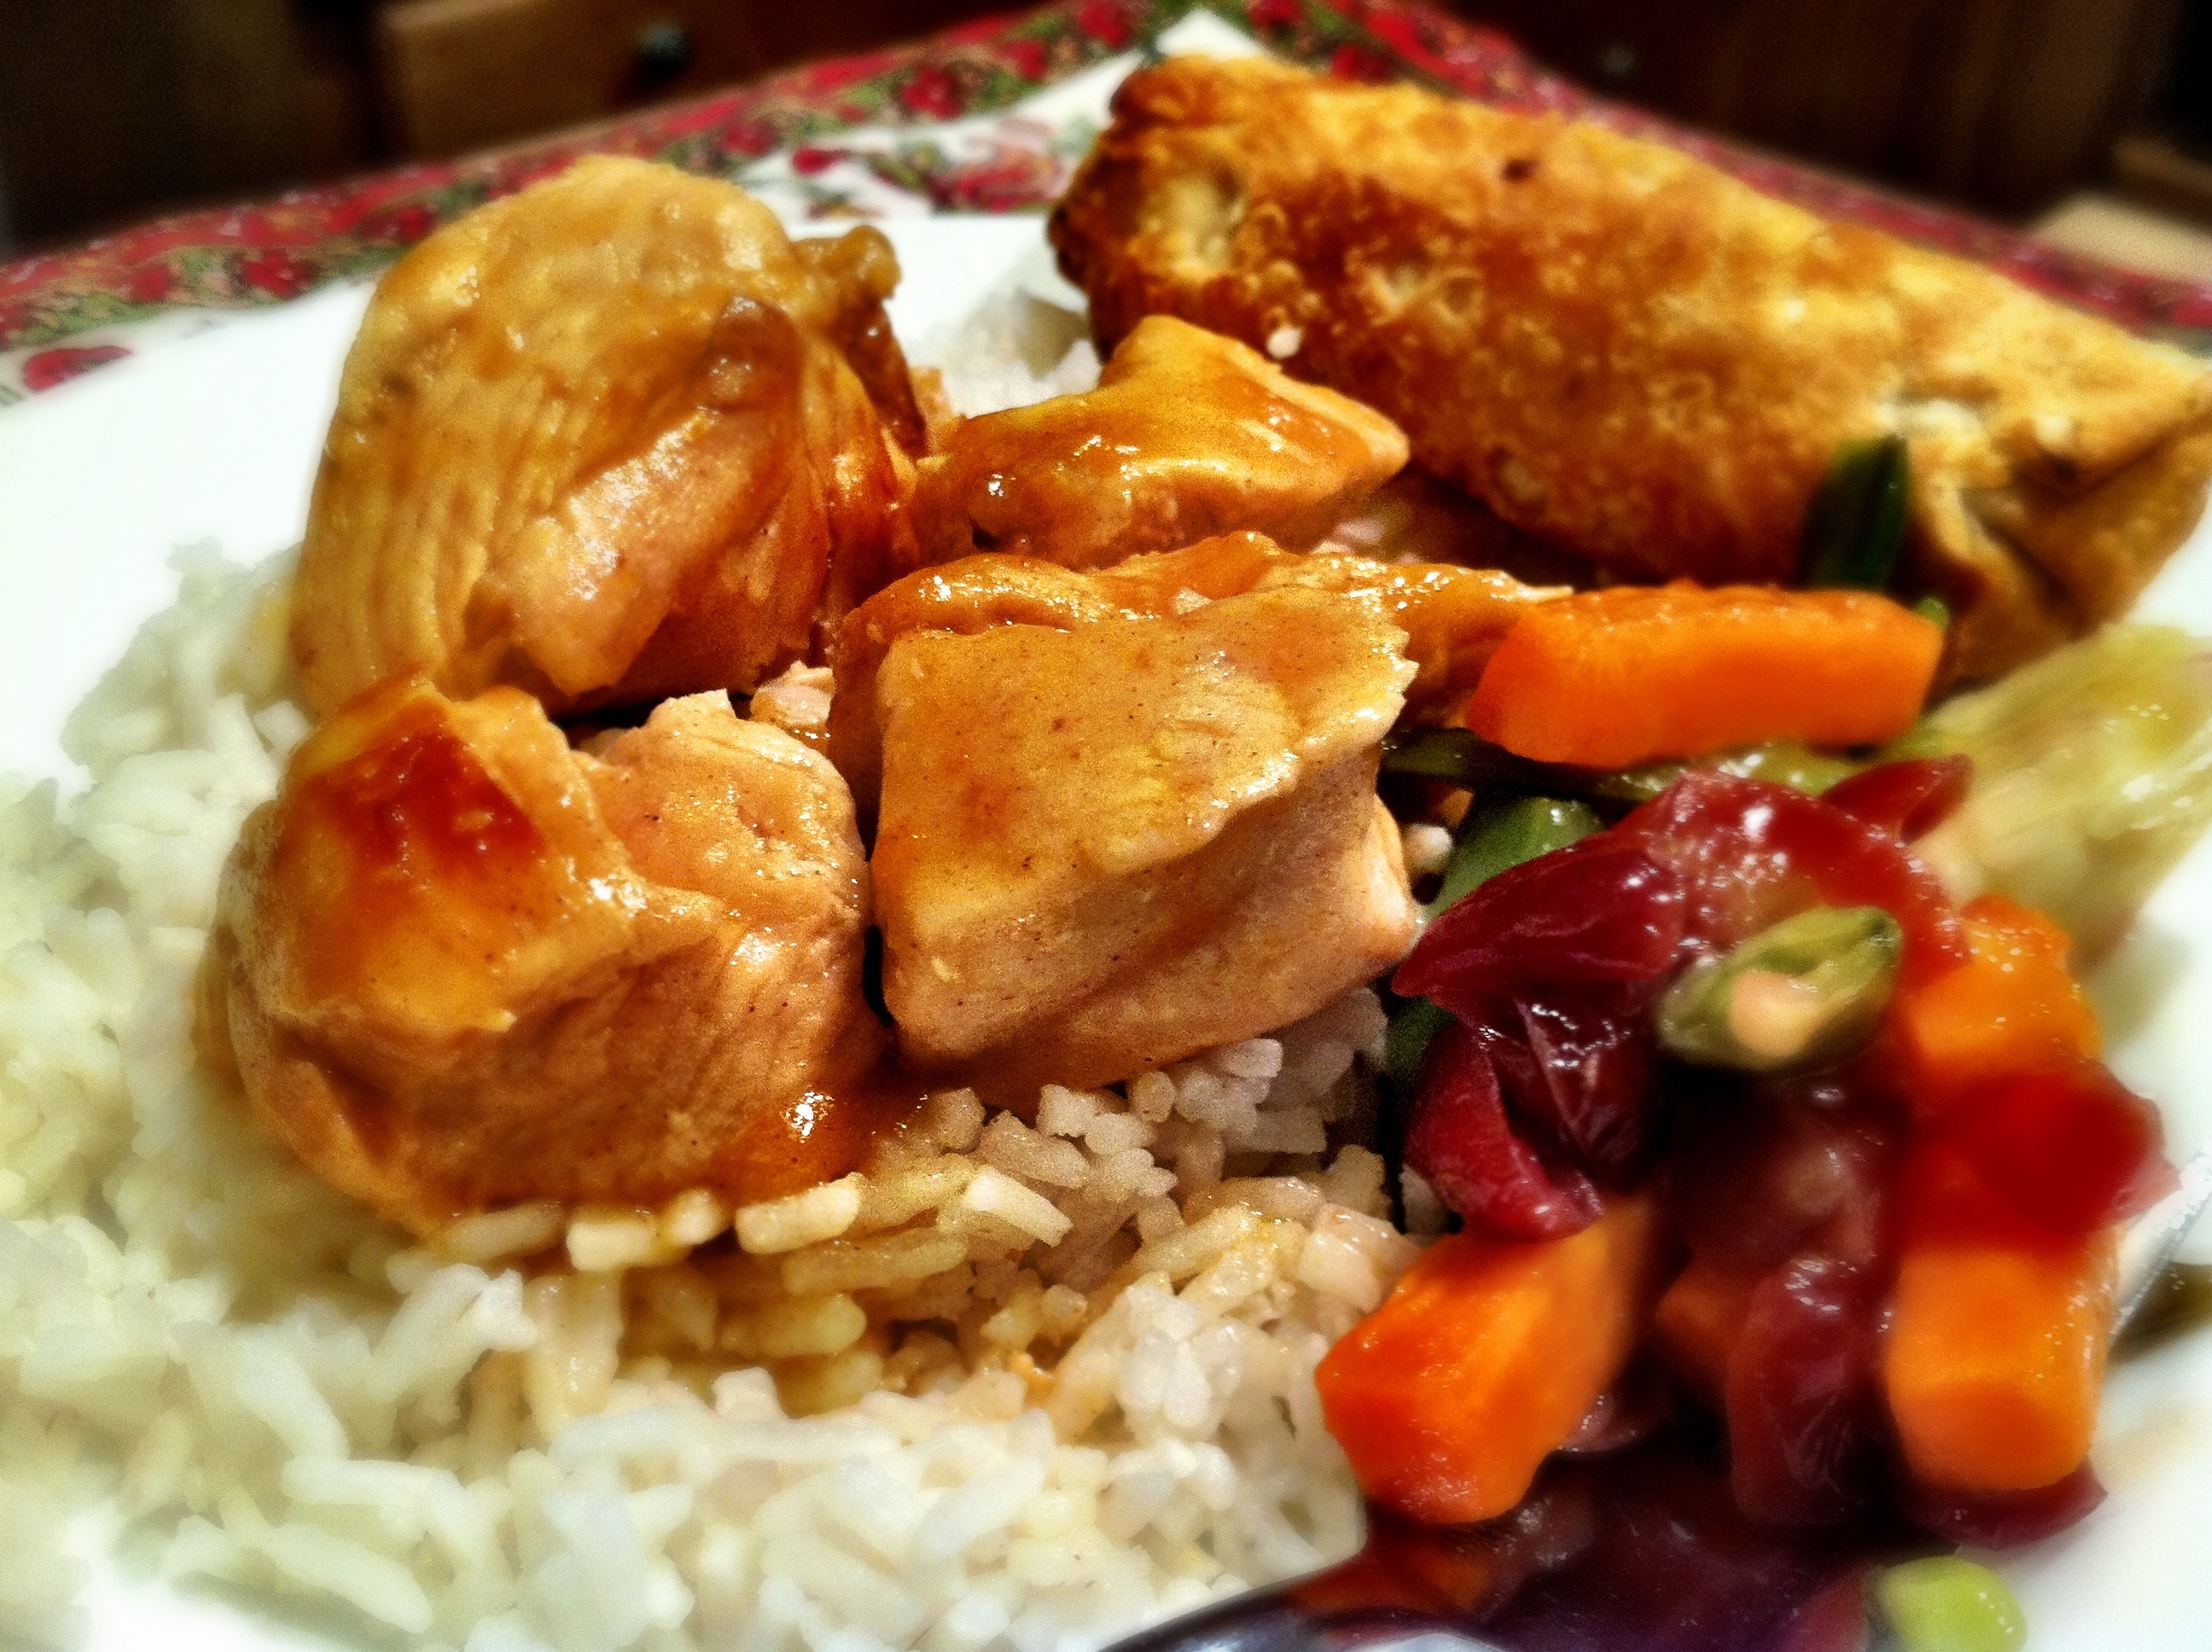 What's For Dinner? Chicken & Orange Sauce With Rice | Passionate Penn...